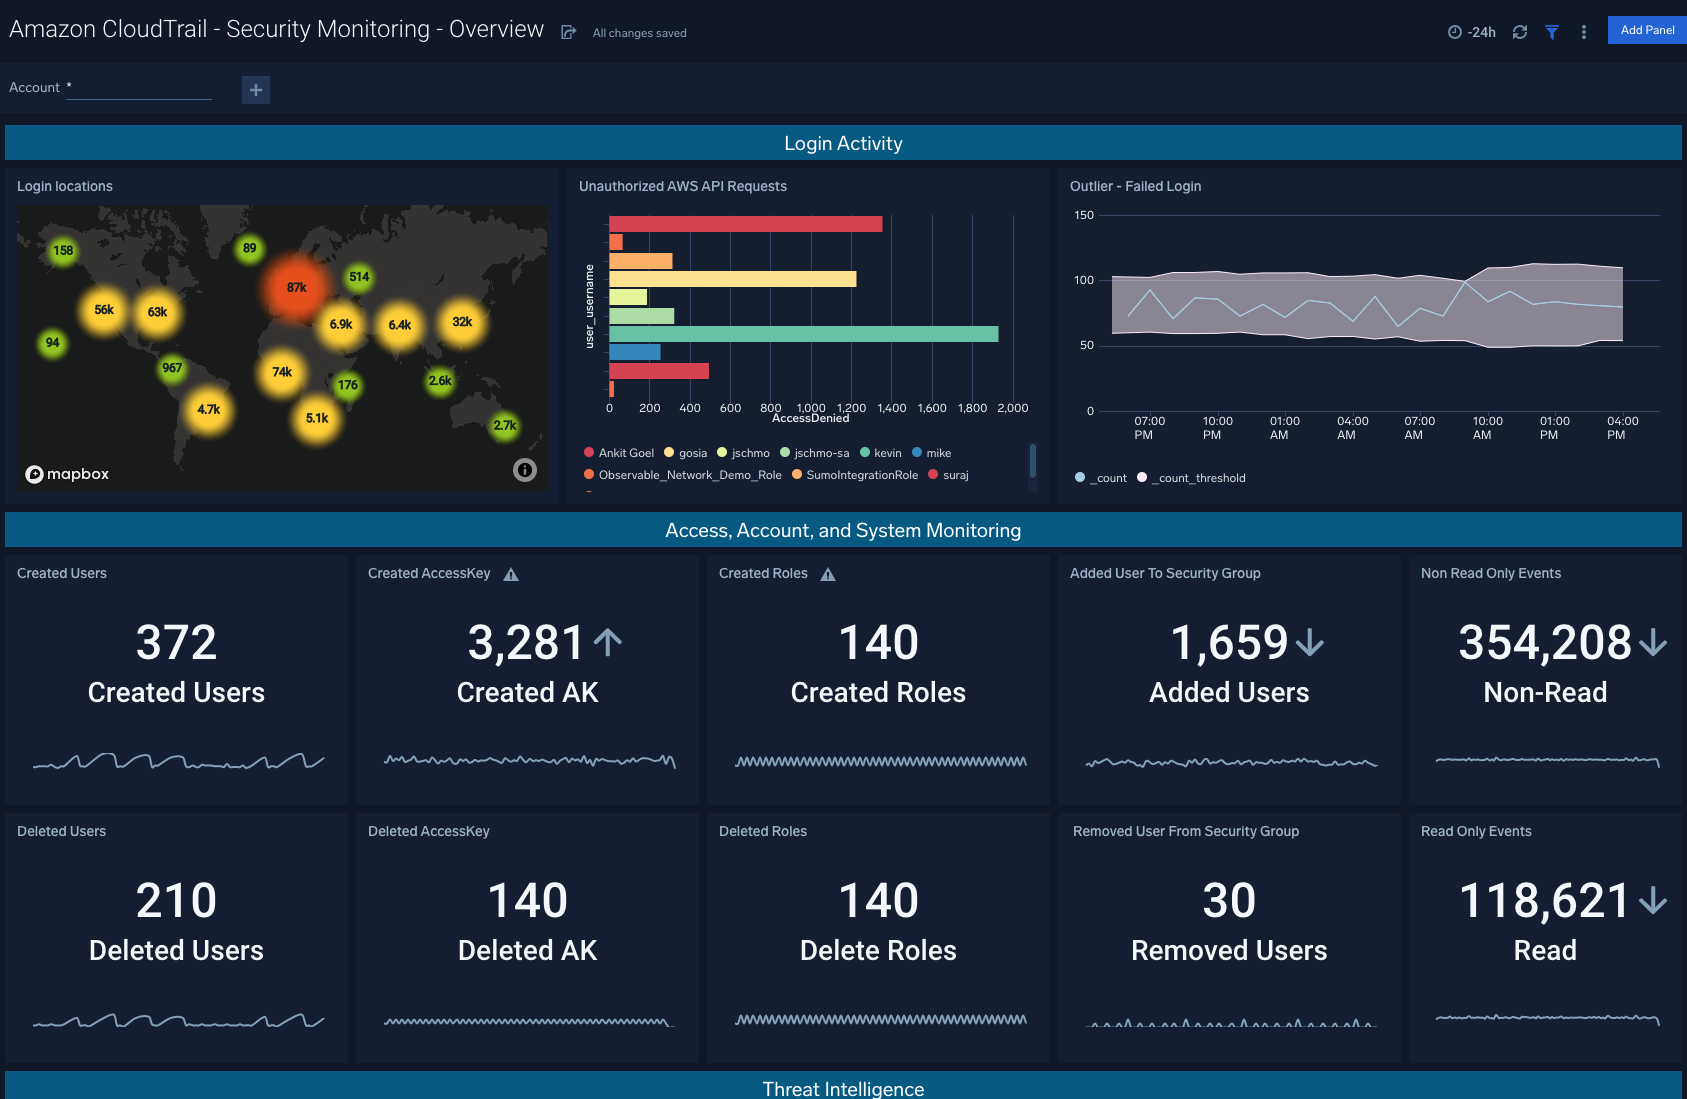 Amazon CloudTrail - Security Monitoring - Overview